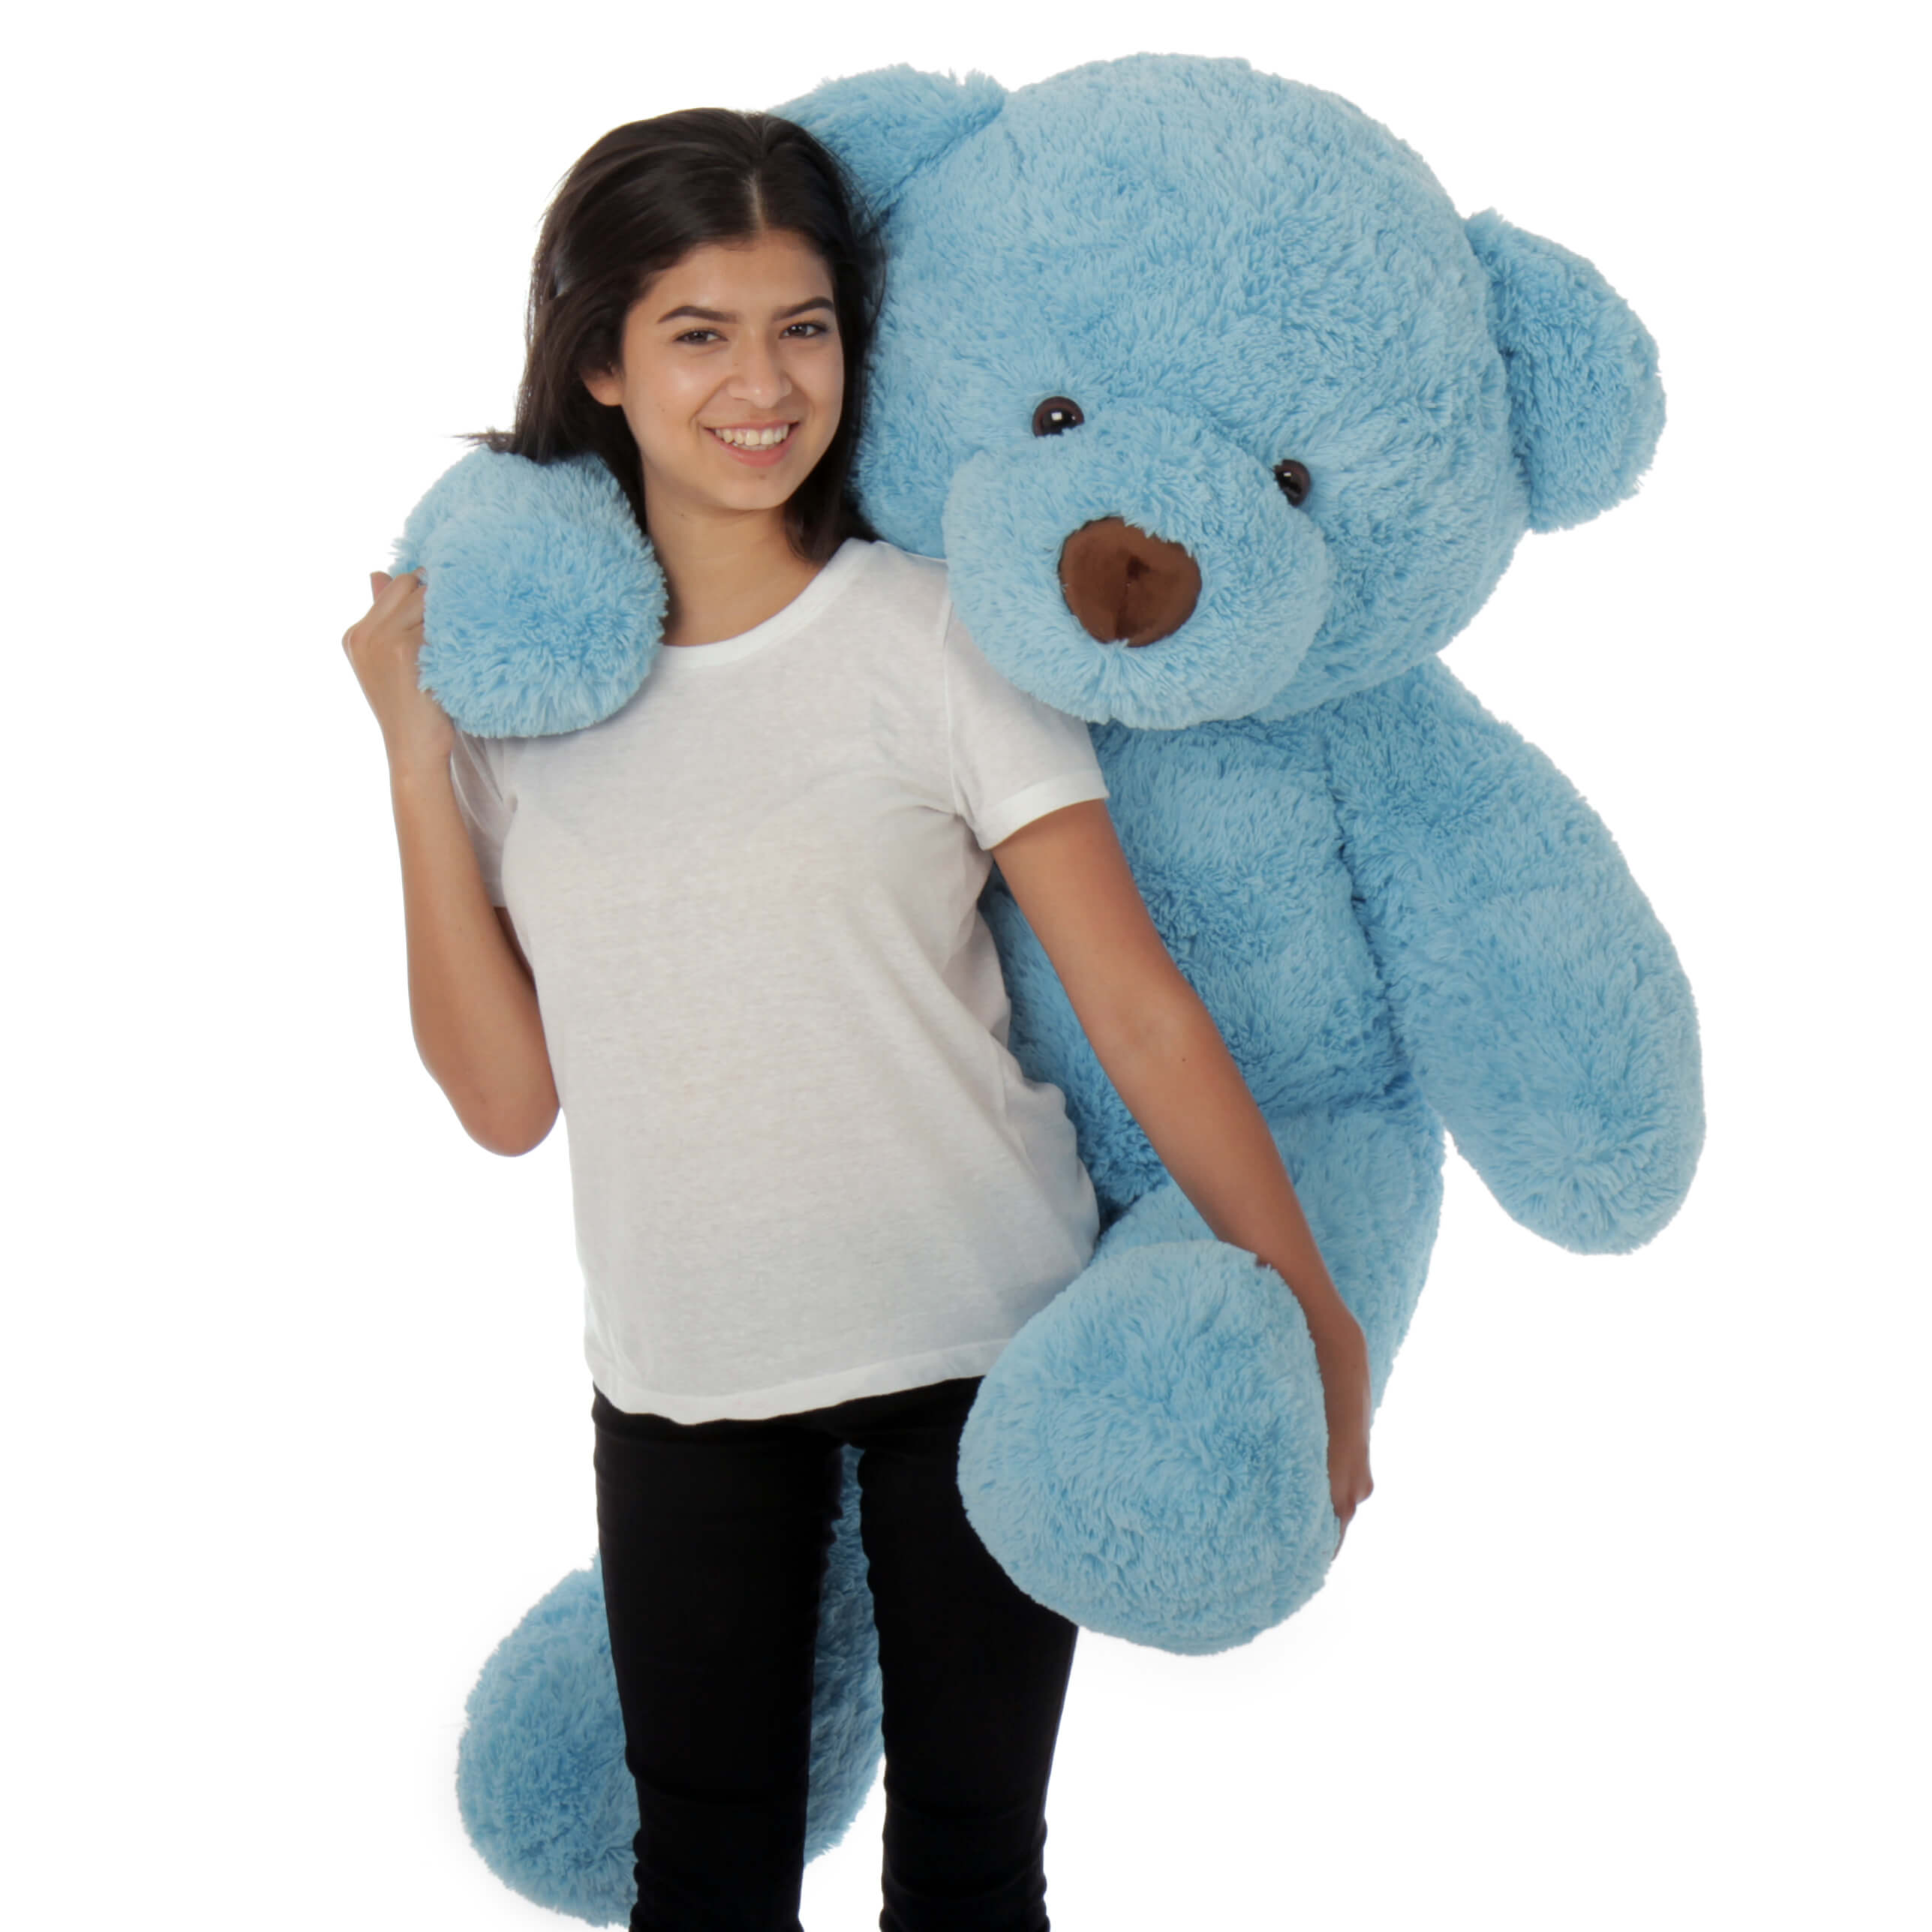 48in-sammy-chubs-blue-teddy-bear-1.jpg